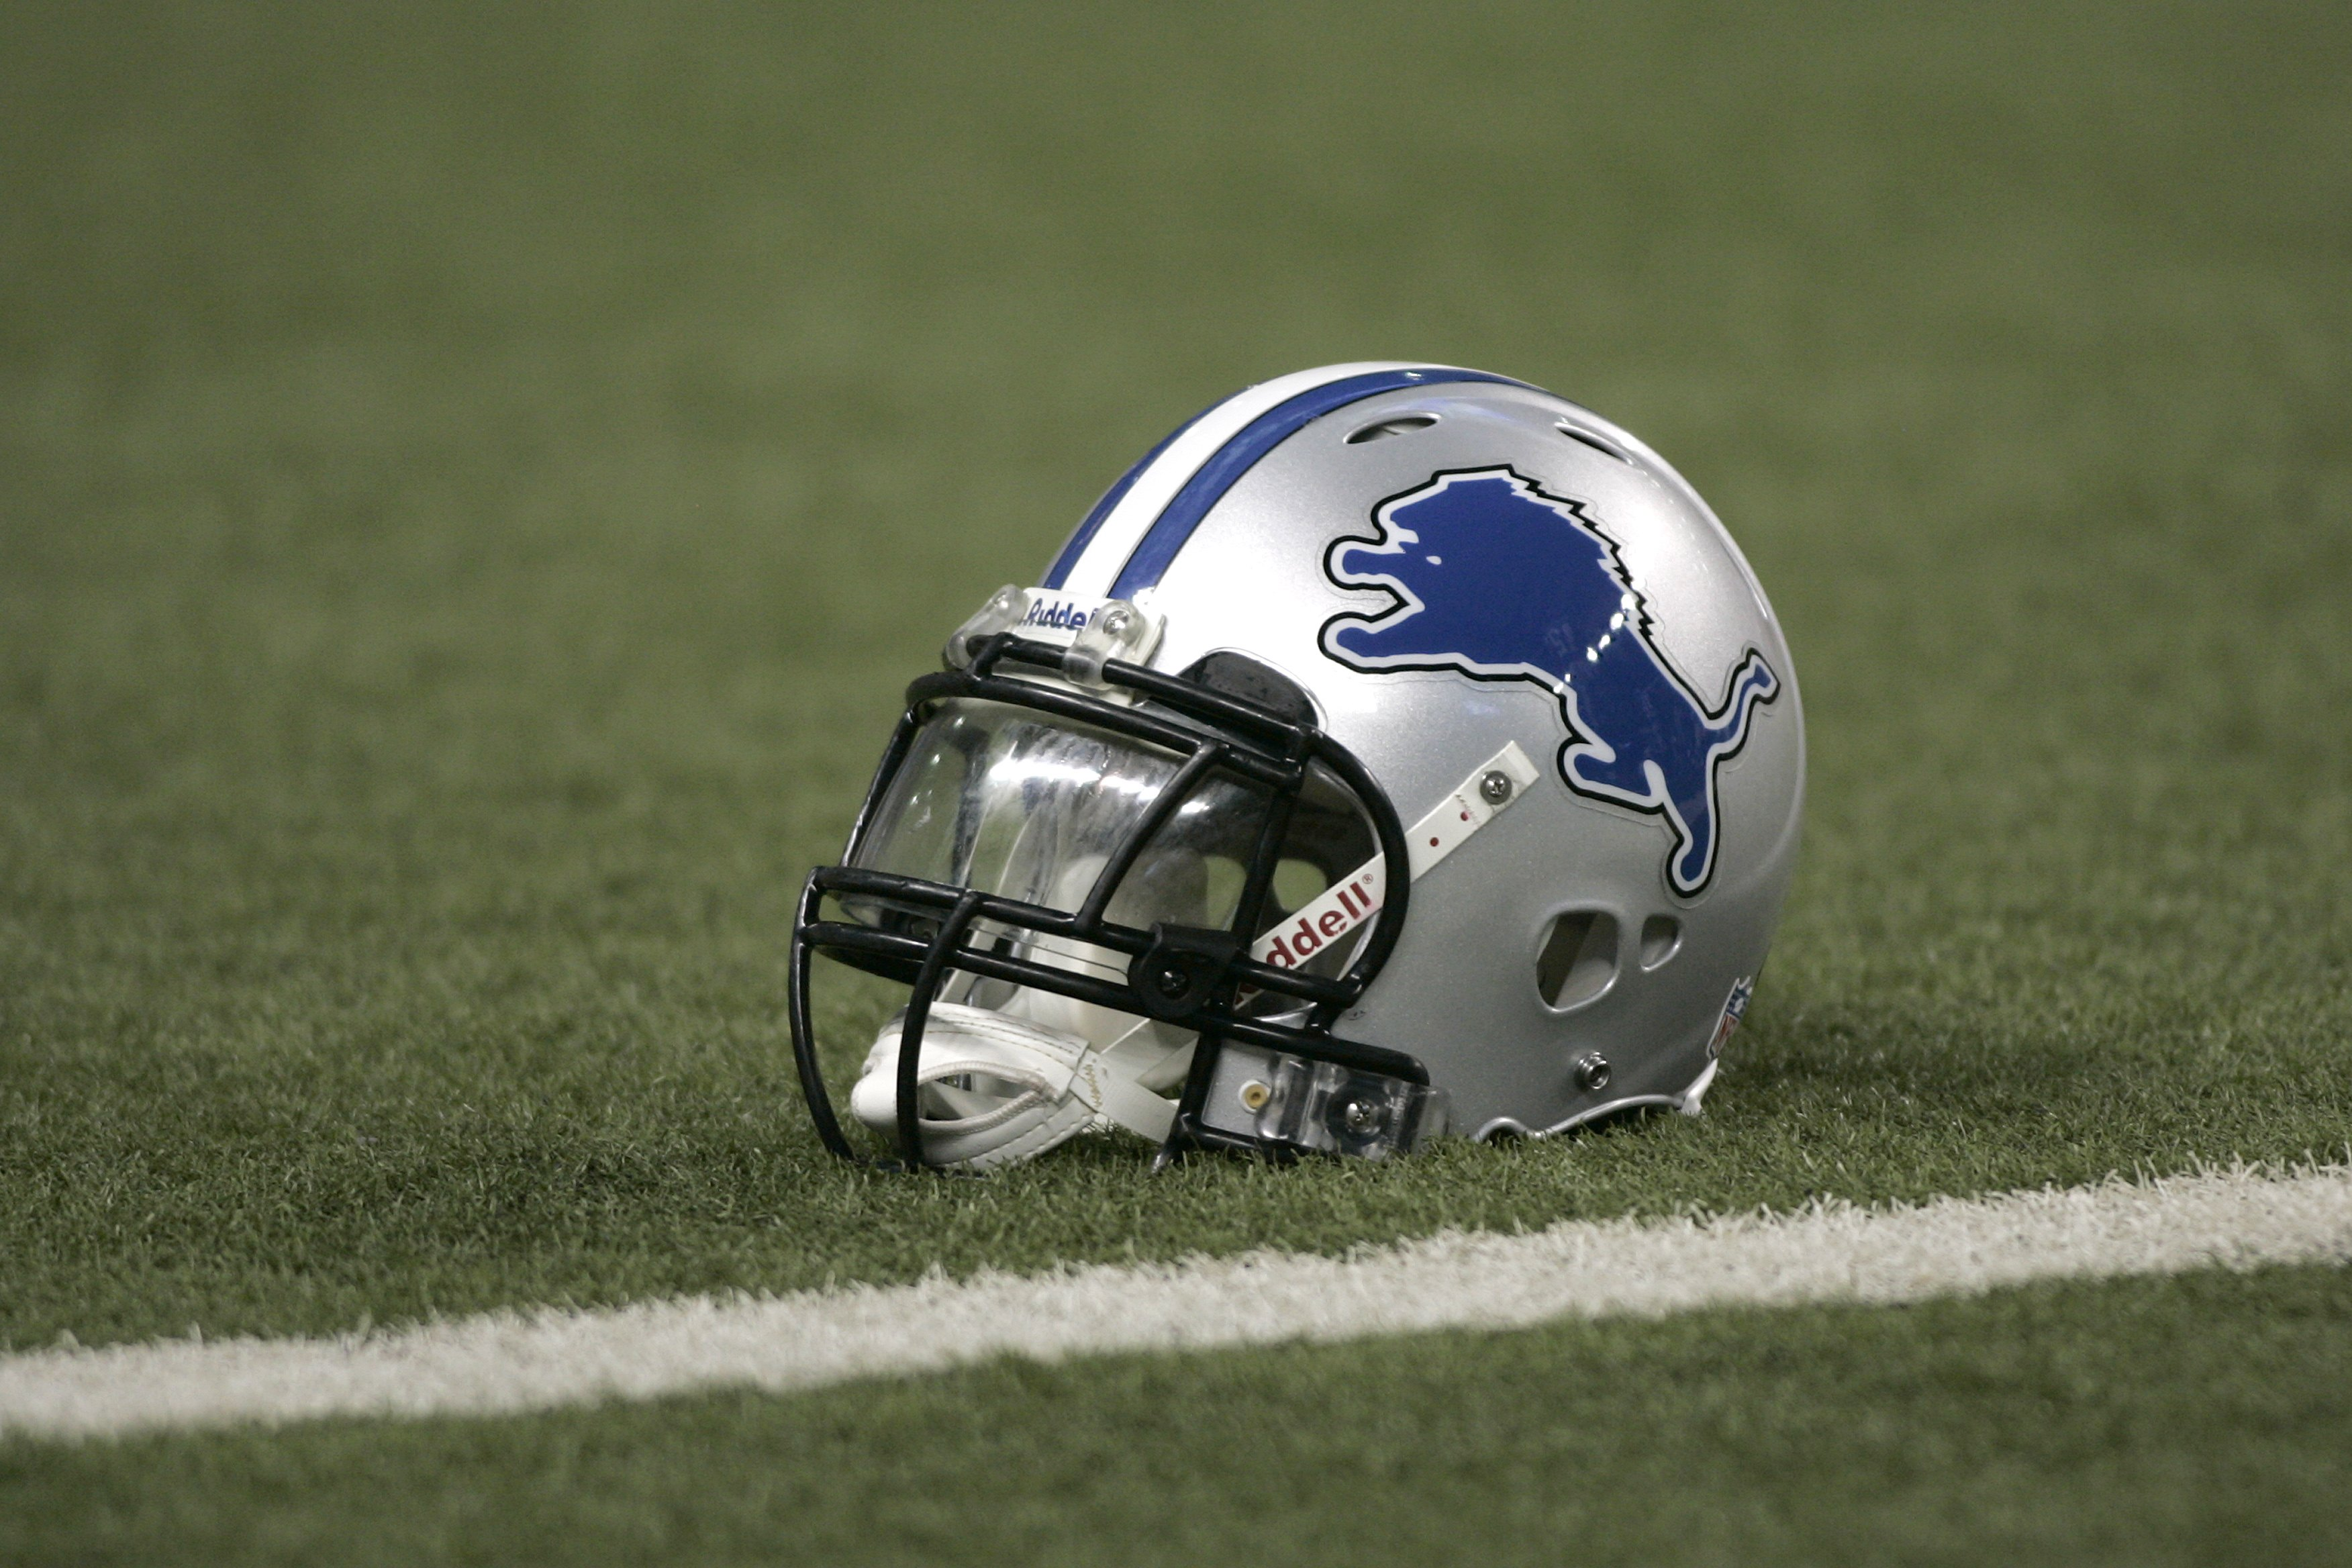 Joe Schmidt Played Middle Linebacker For The Detroit Lions